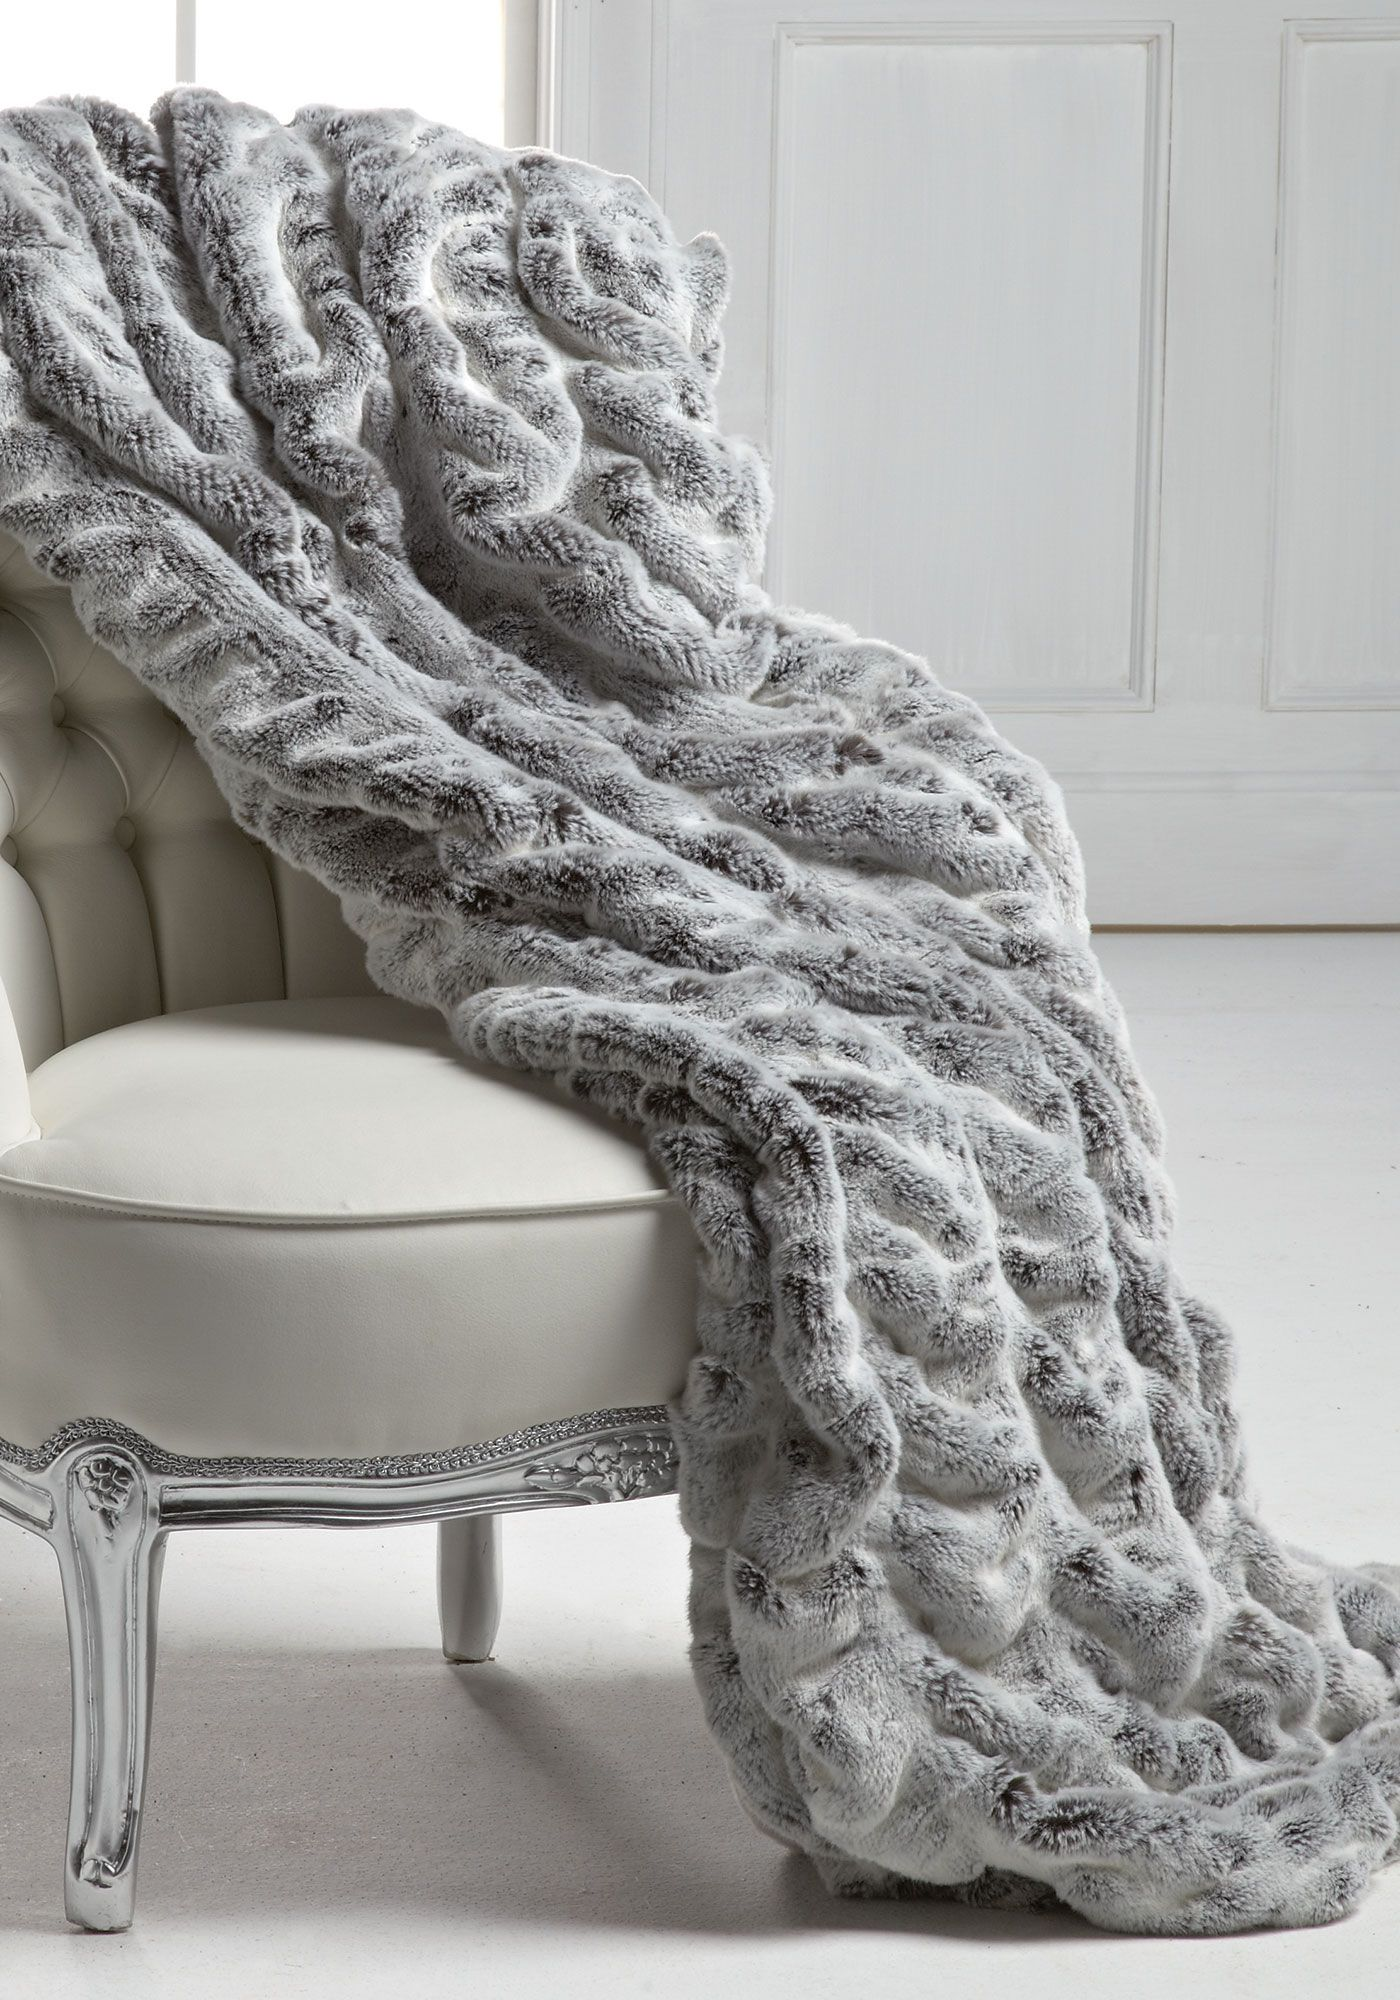 Awesome Luxury Decorative Throw Blankets 88 About Remodel